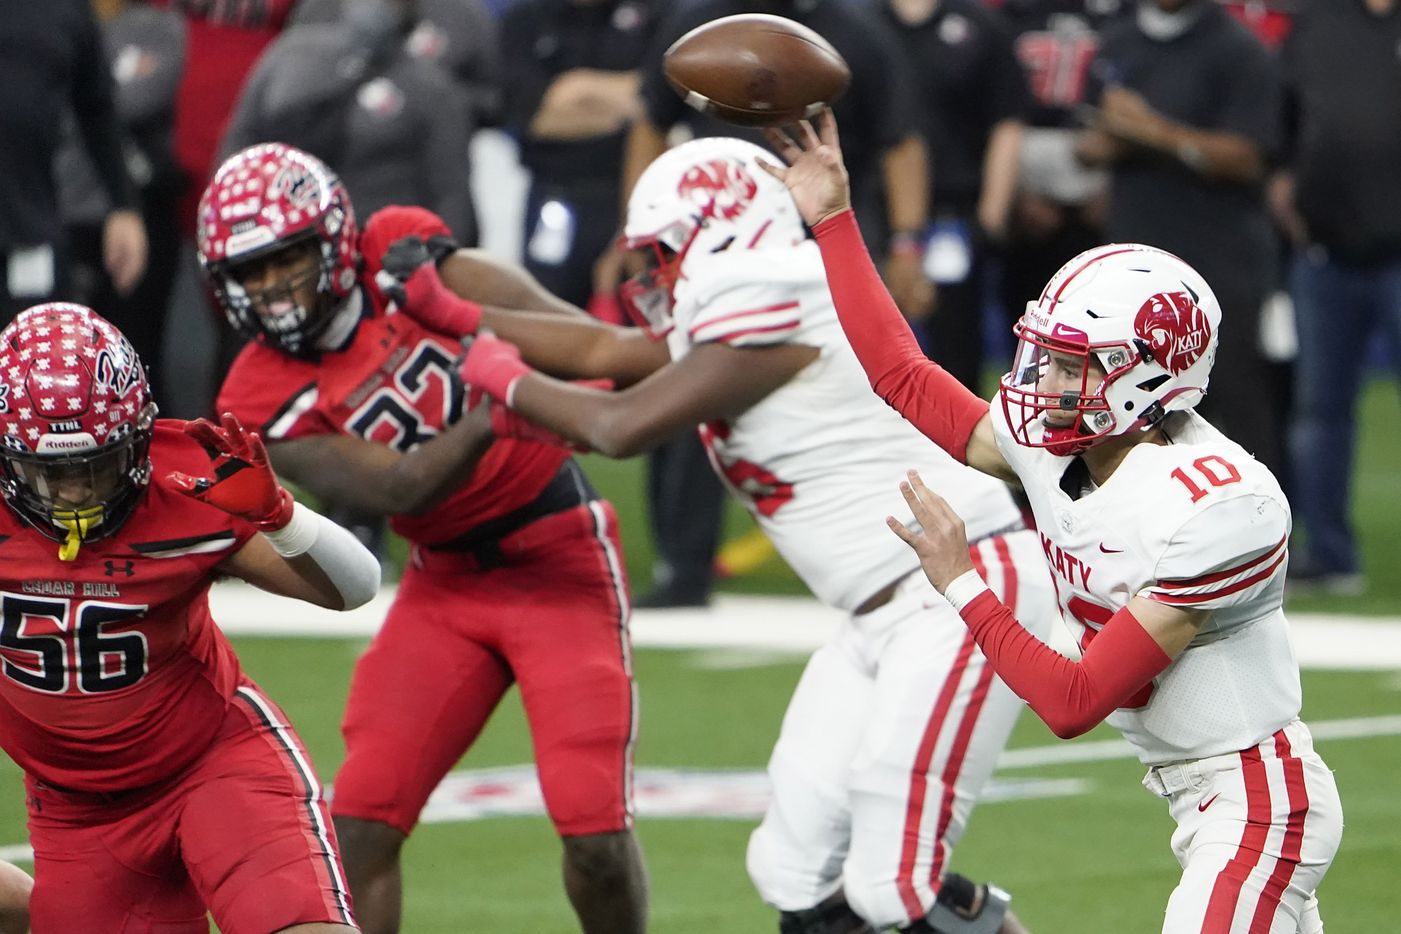 Katy quarterback Caleb Koger (10) throws a pass under pressure from Cedar Hill defensive end Harvey Dyson (56) during the first half of the Class 6A Division II state football championship game at AT&T Stadium on Saturday, Jan. 16, 2021, in Arlington, Texas.